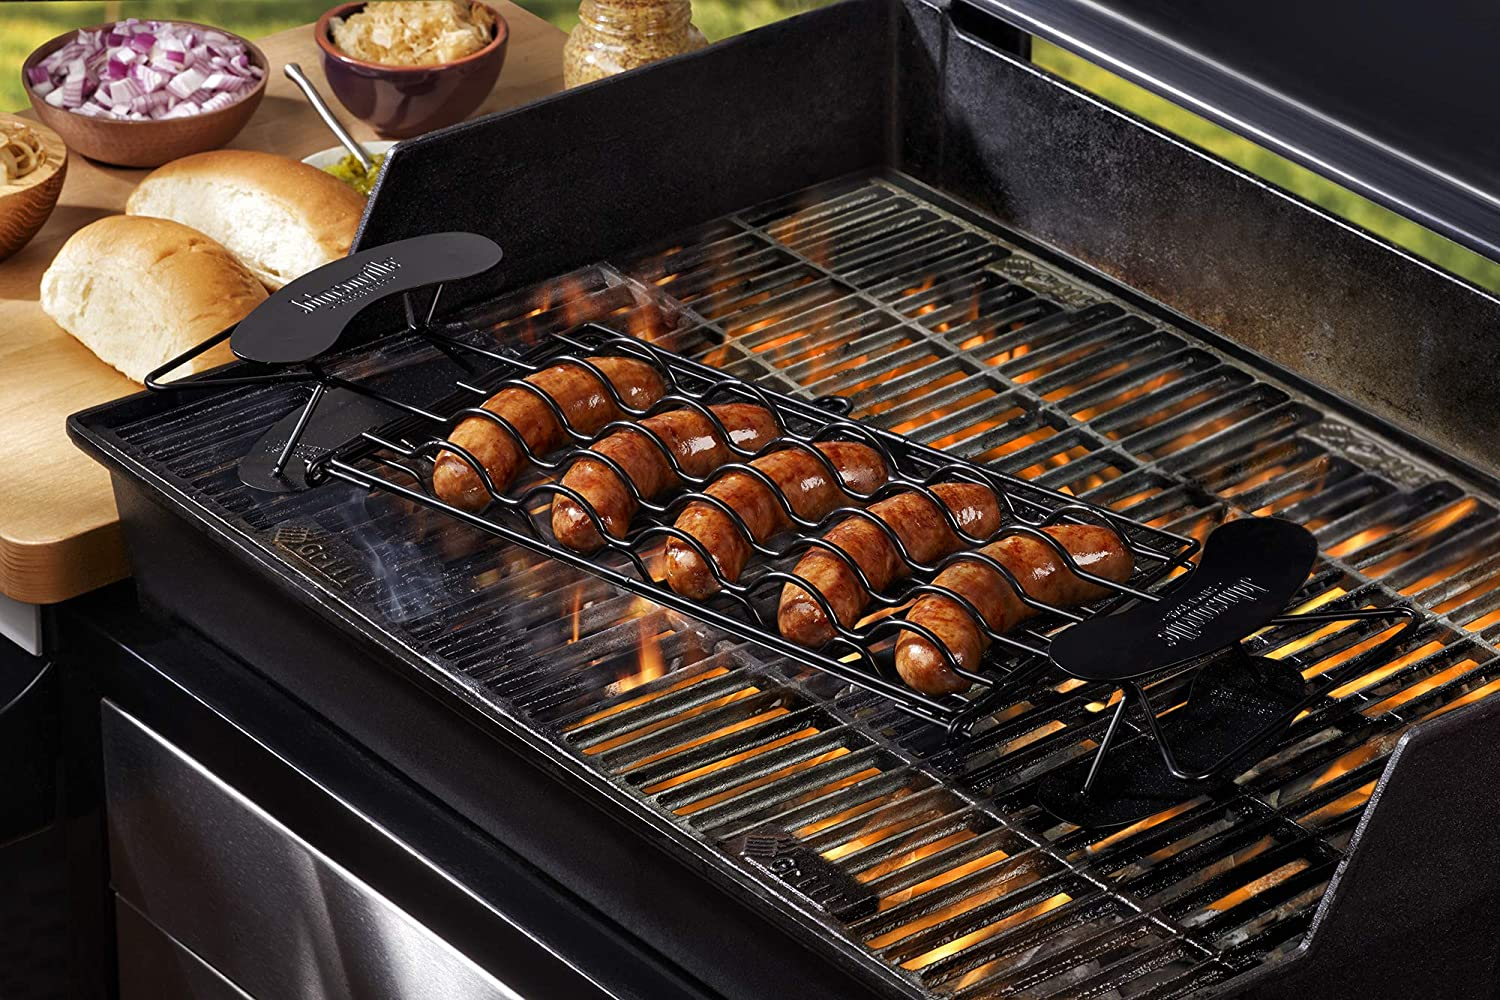 Johnsonville Brat Griller - BBQ Basket for 5 Sausage Links